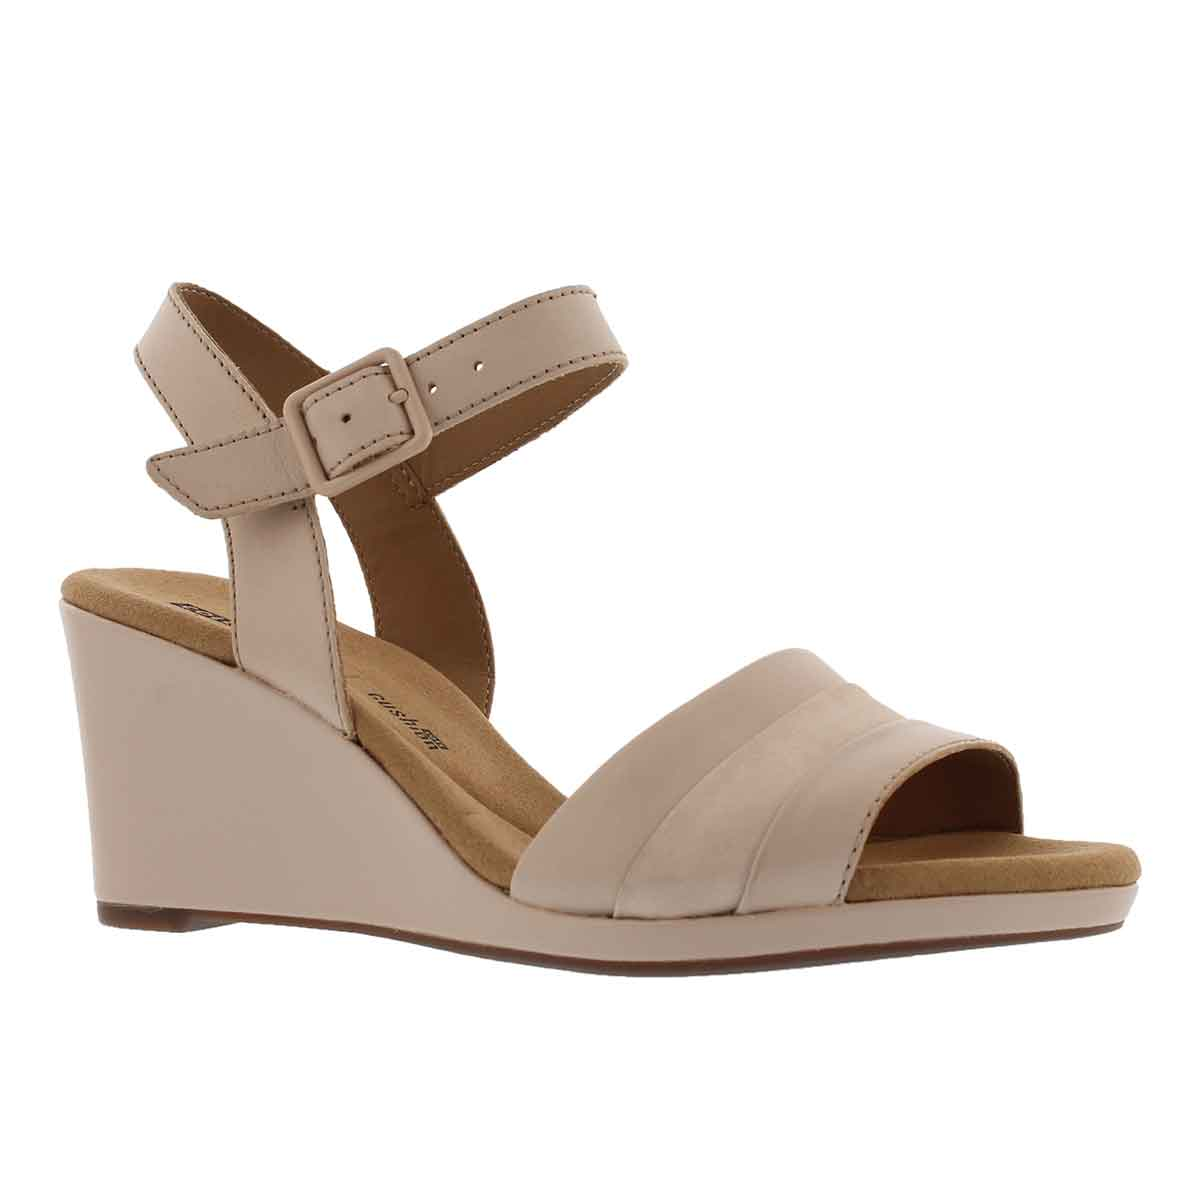 Women's LAFELY ALETHA dusty pnk wedge sandals